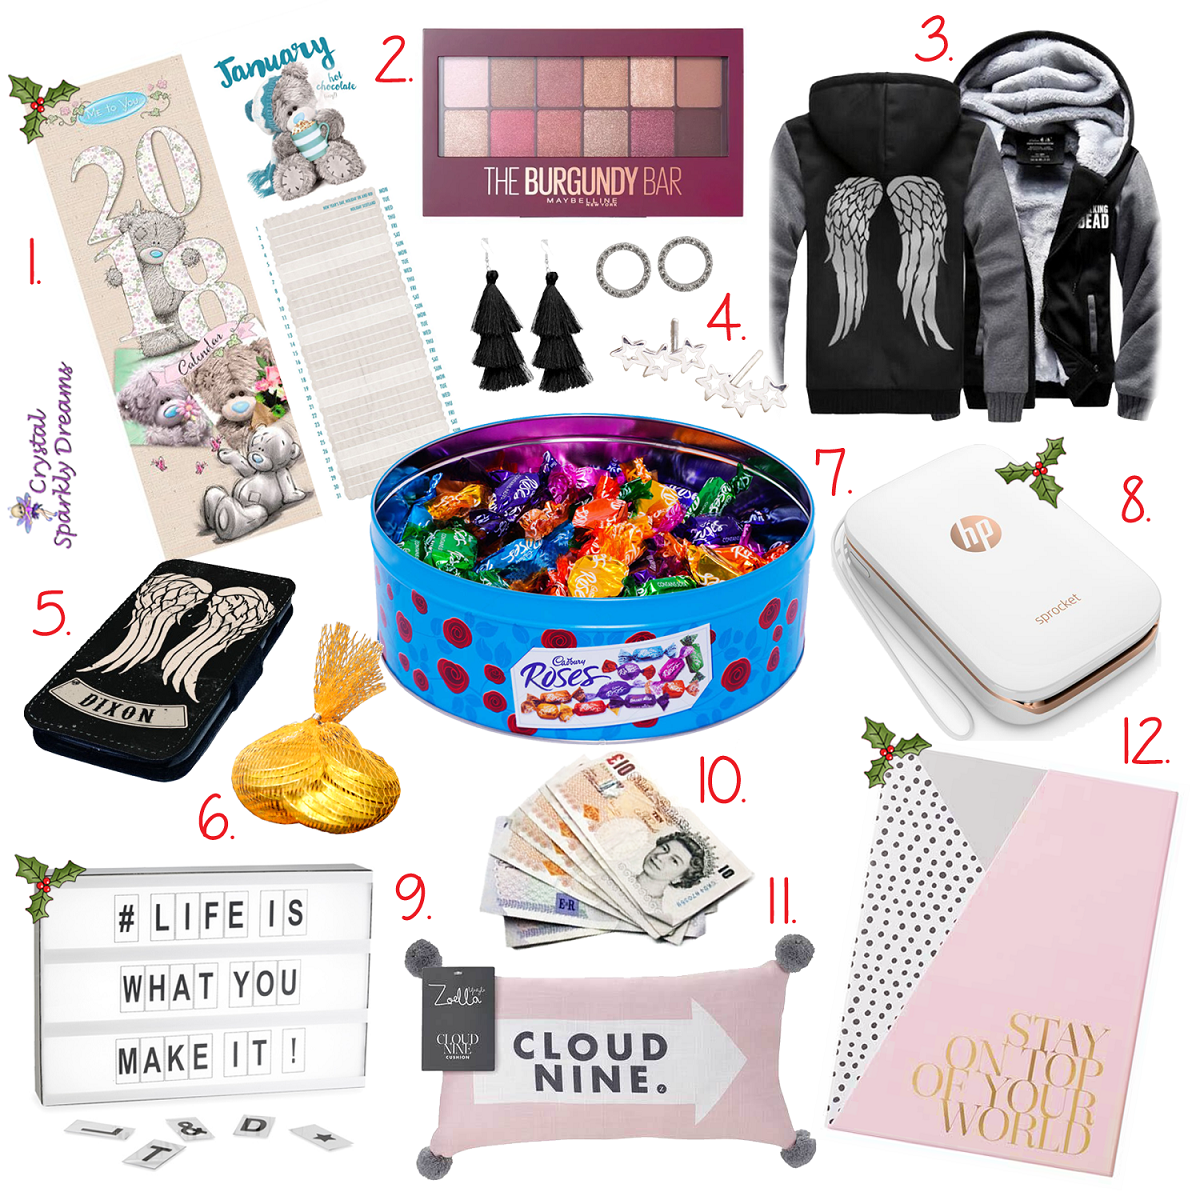 Christmas Wish List Ideas.Crystal Sparkly Dreams Christmas Wish List Gift Guide 2017